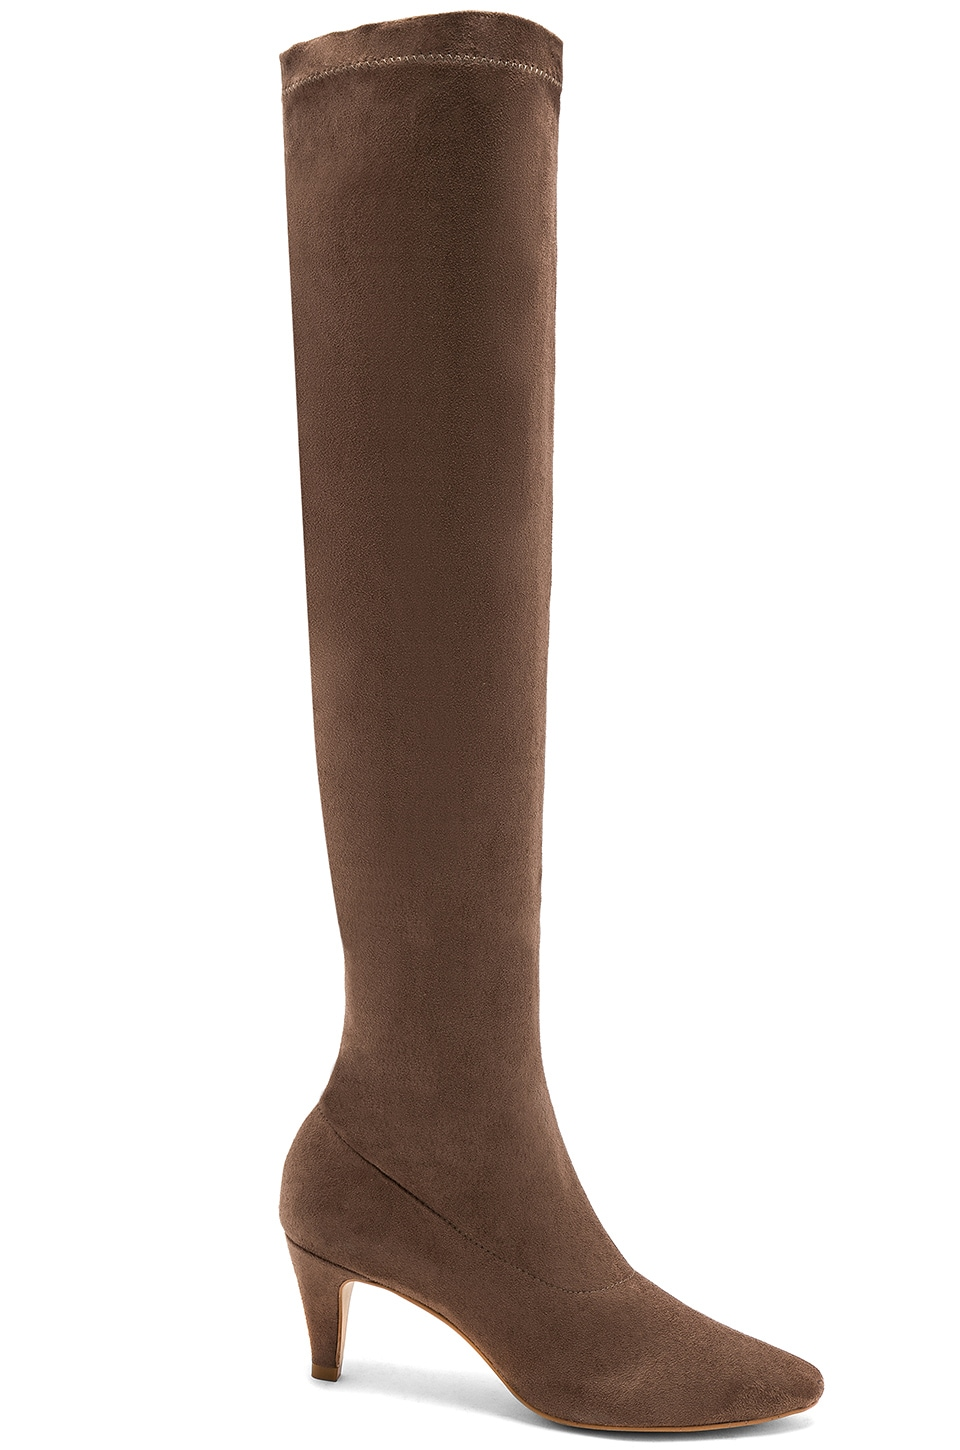 Matisse Rockland Boot in Taupe